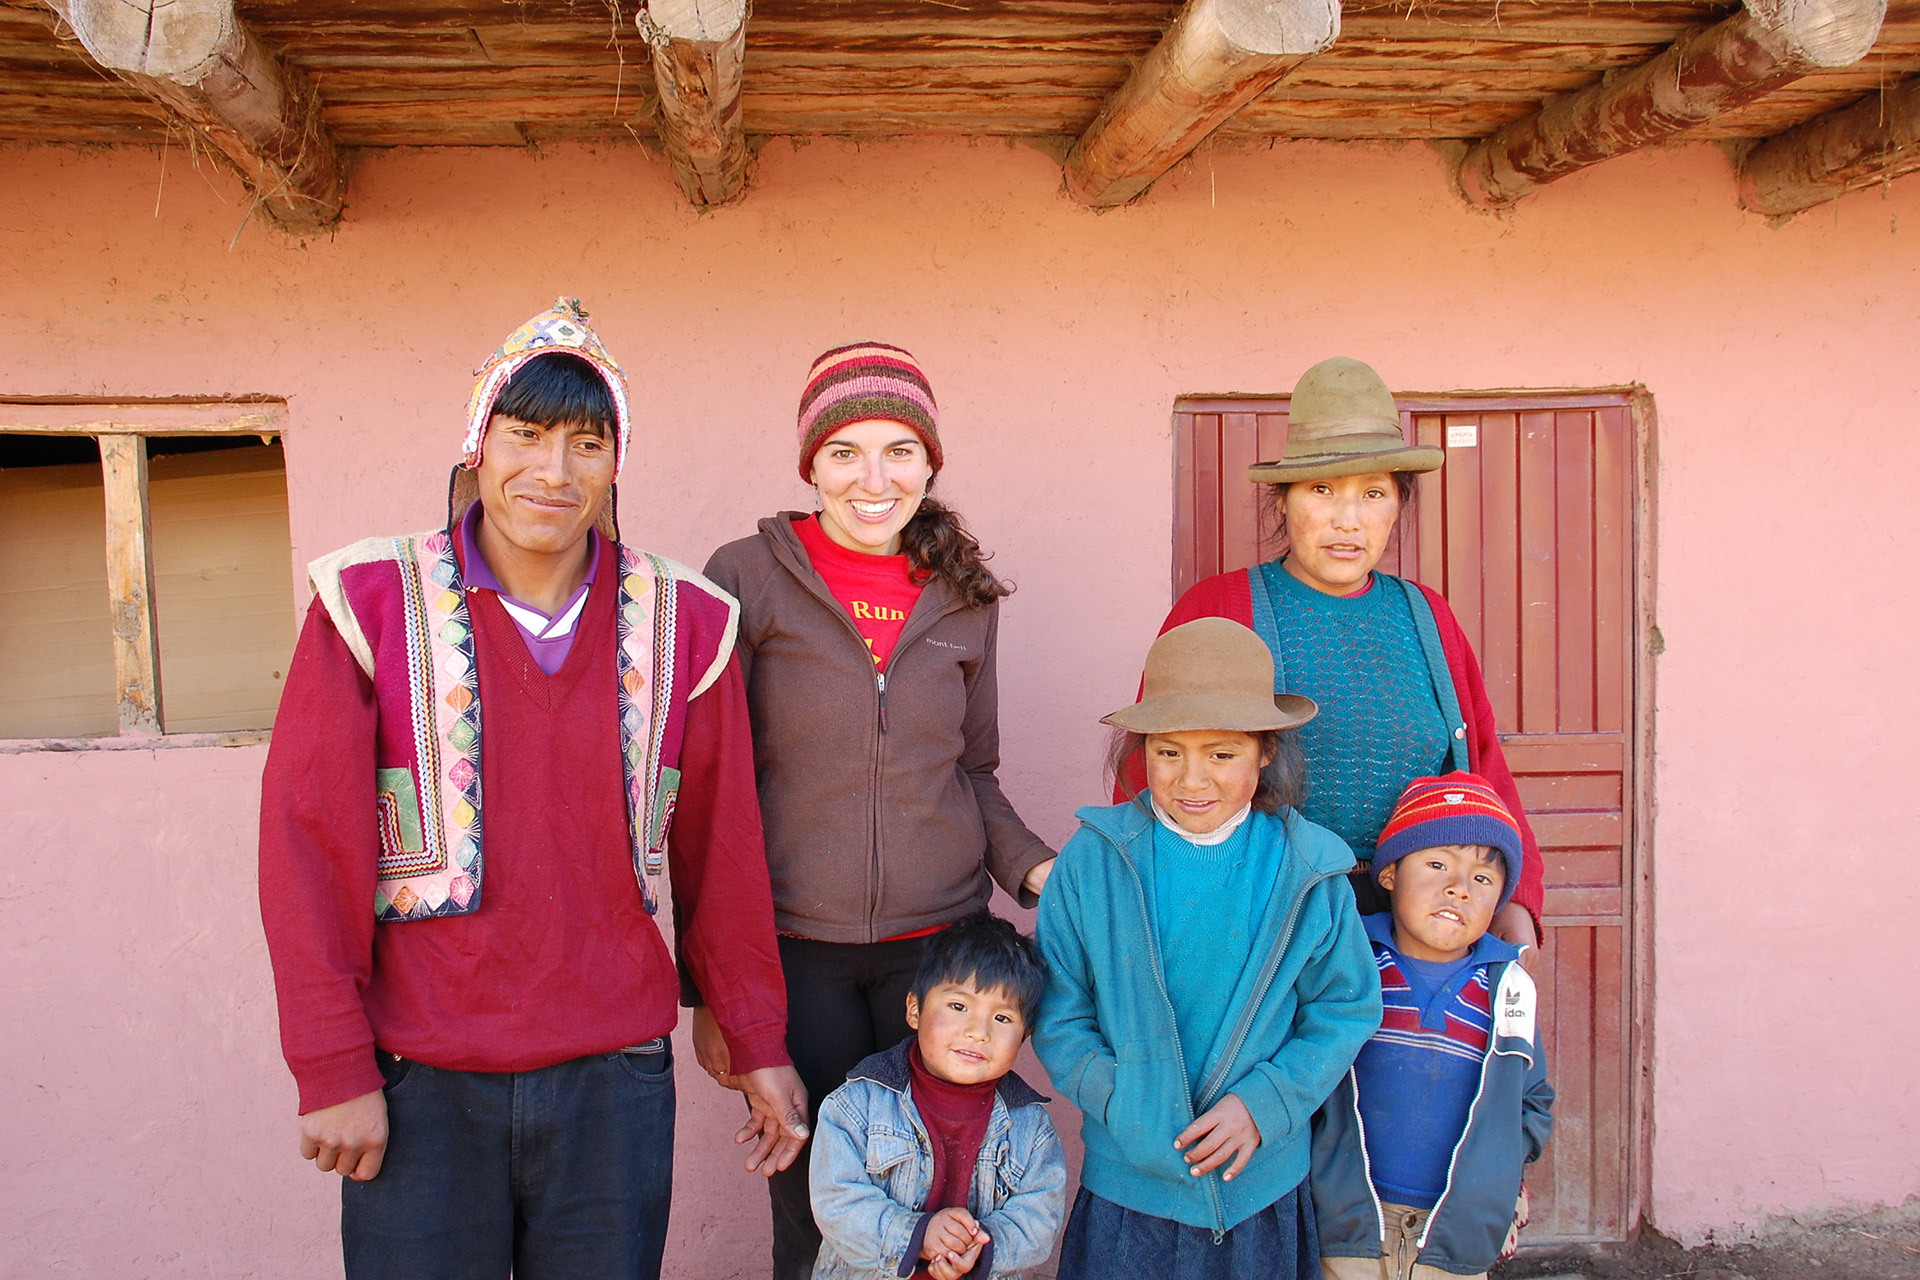 Tufts Civic Semester in Peru